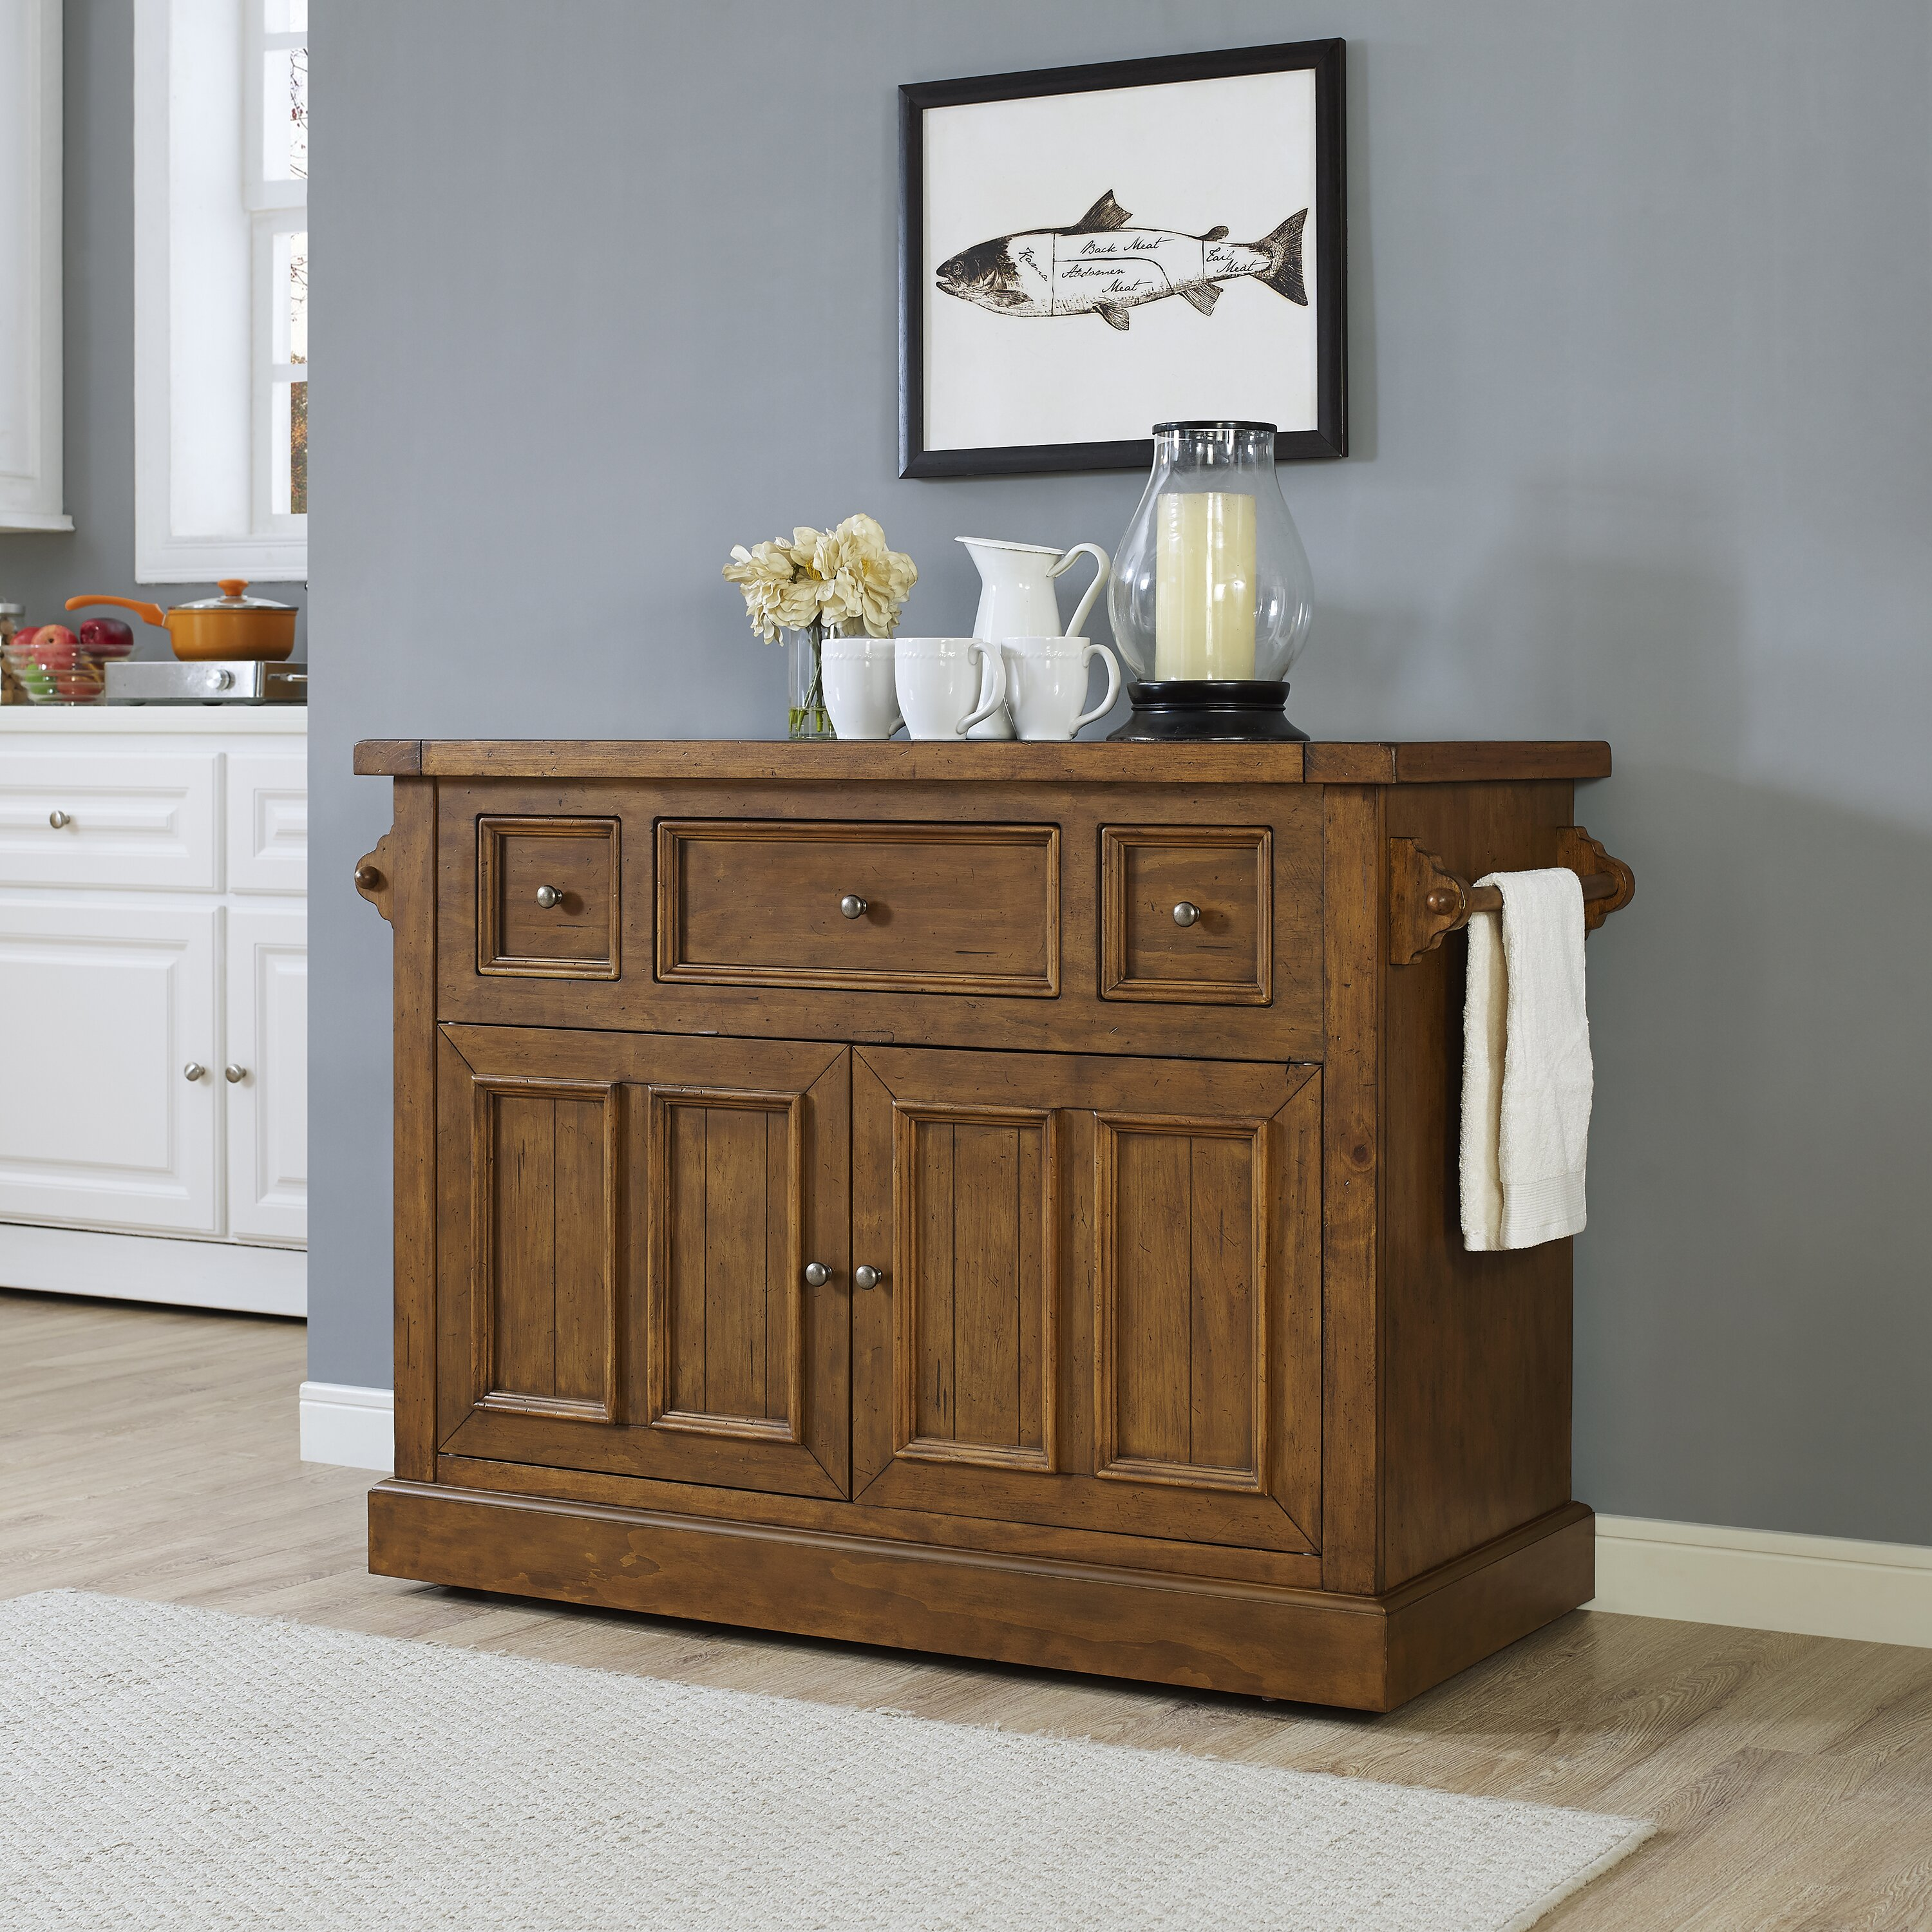 Loon peak ordway kitchen island with marble top wayfair for Marble topped kitchen island